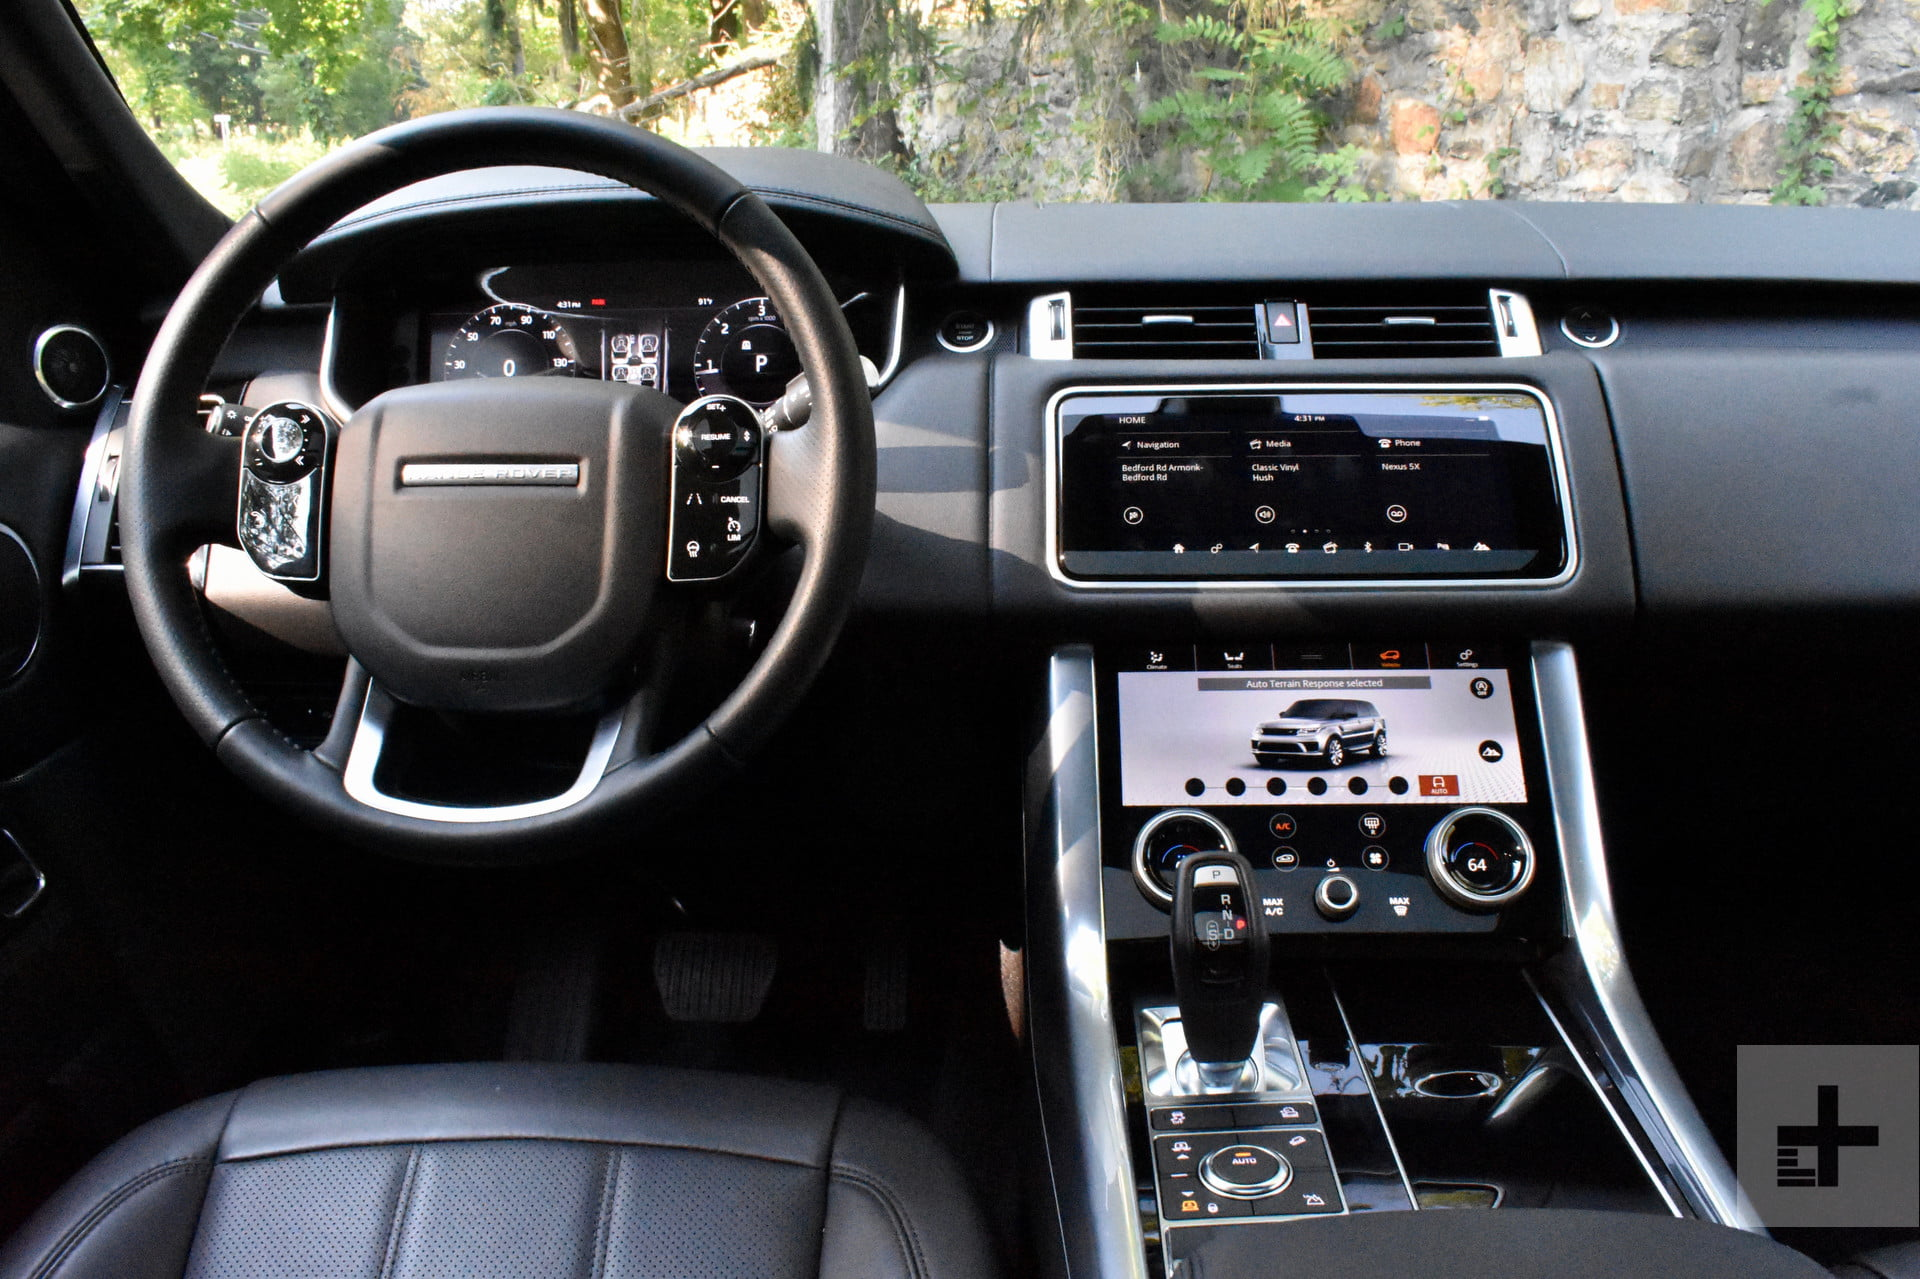 2018 Land Rover Range Rover Sport HSE Td6 Review | Digital